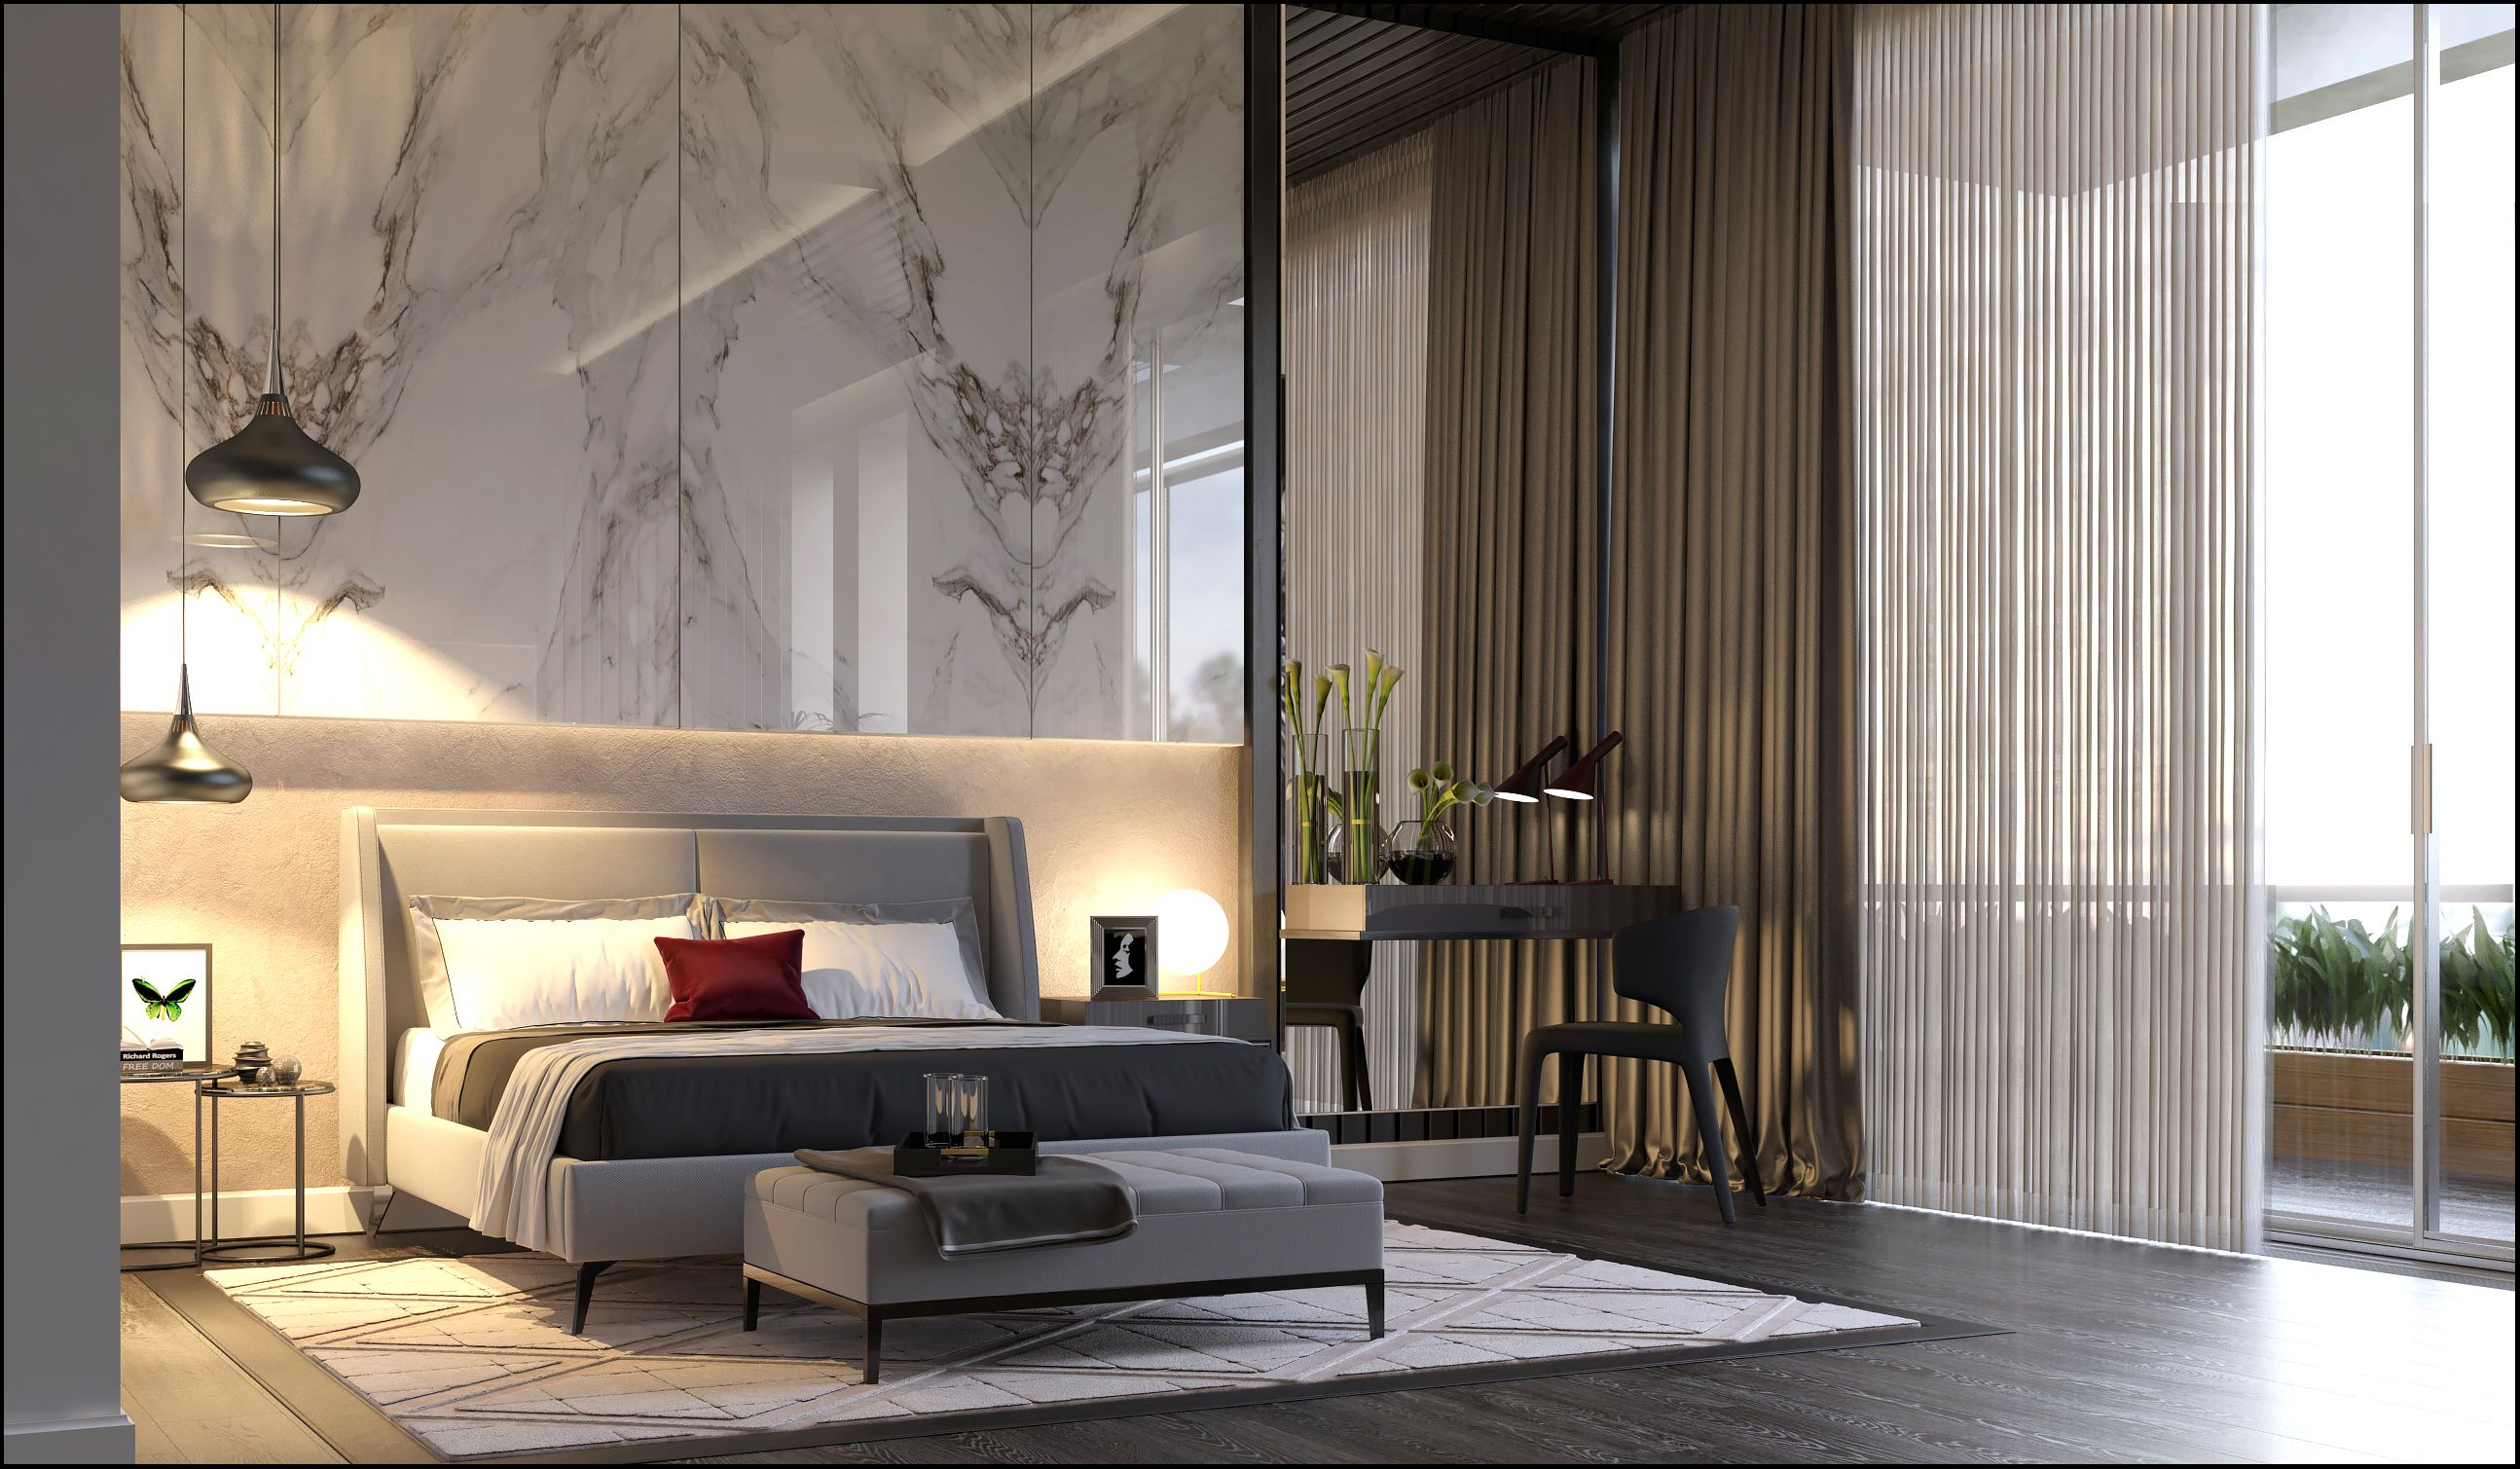 Luxury apartment on Behance Luxury bedroom master